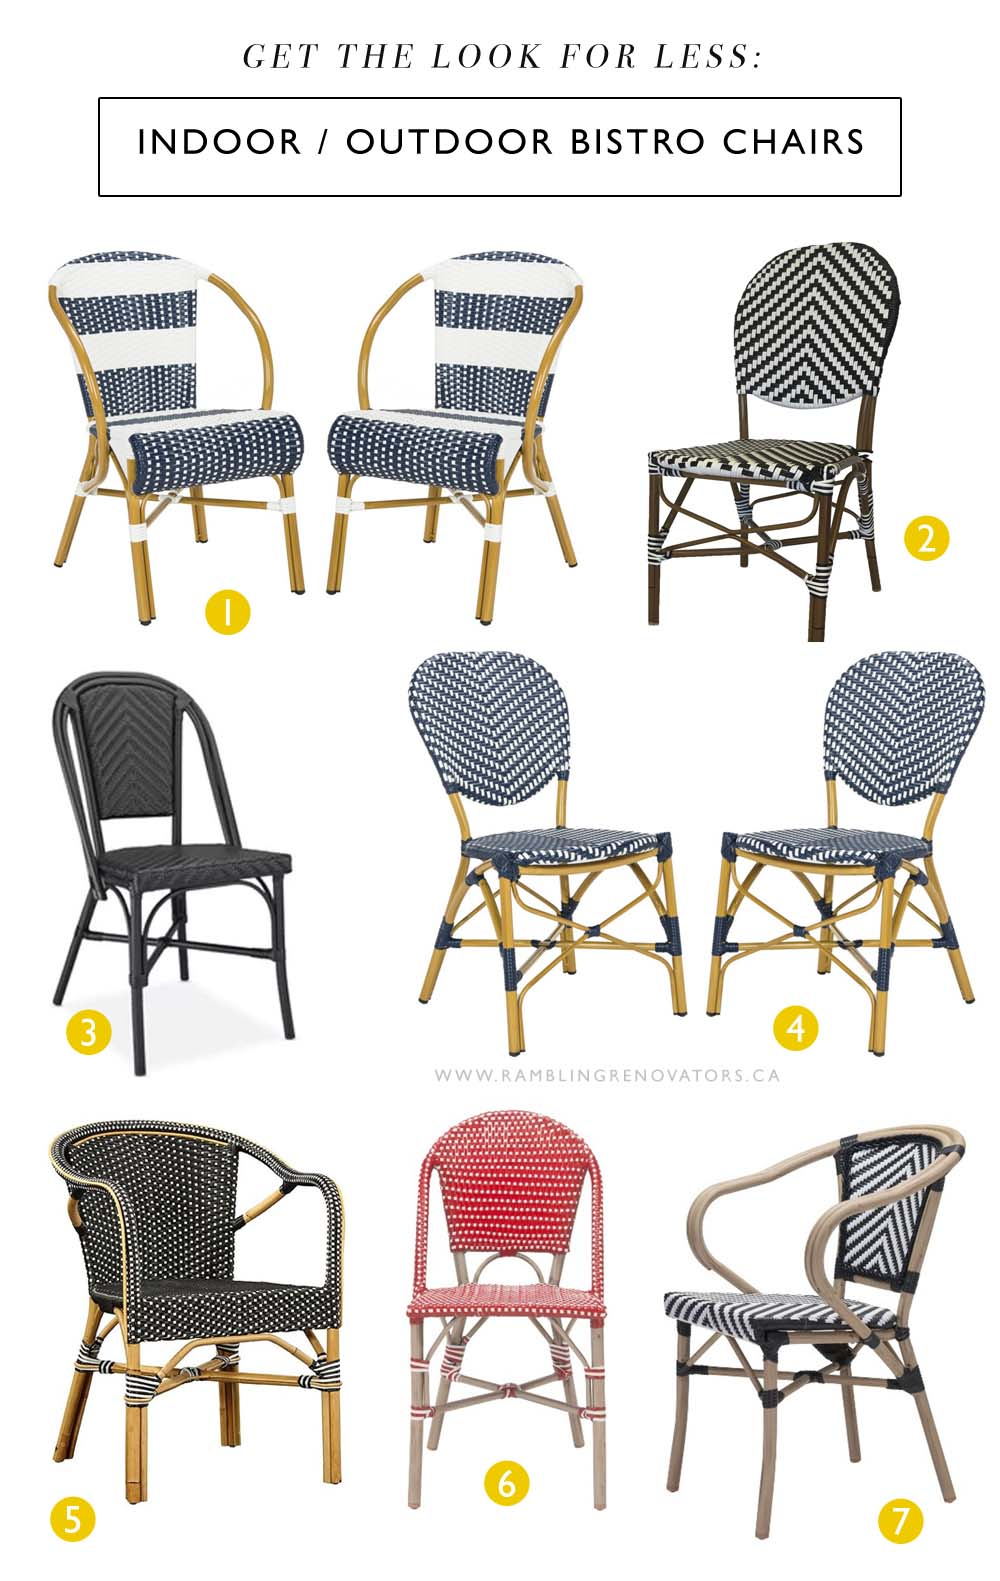 the bistro chair look for less | Ramblingrenovators.ca